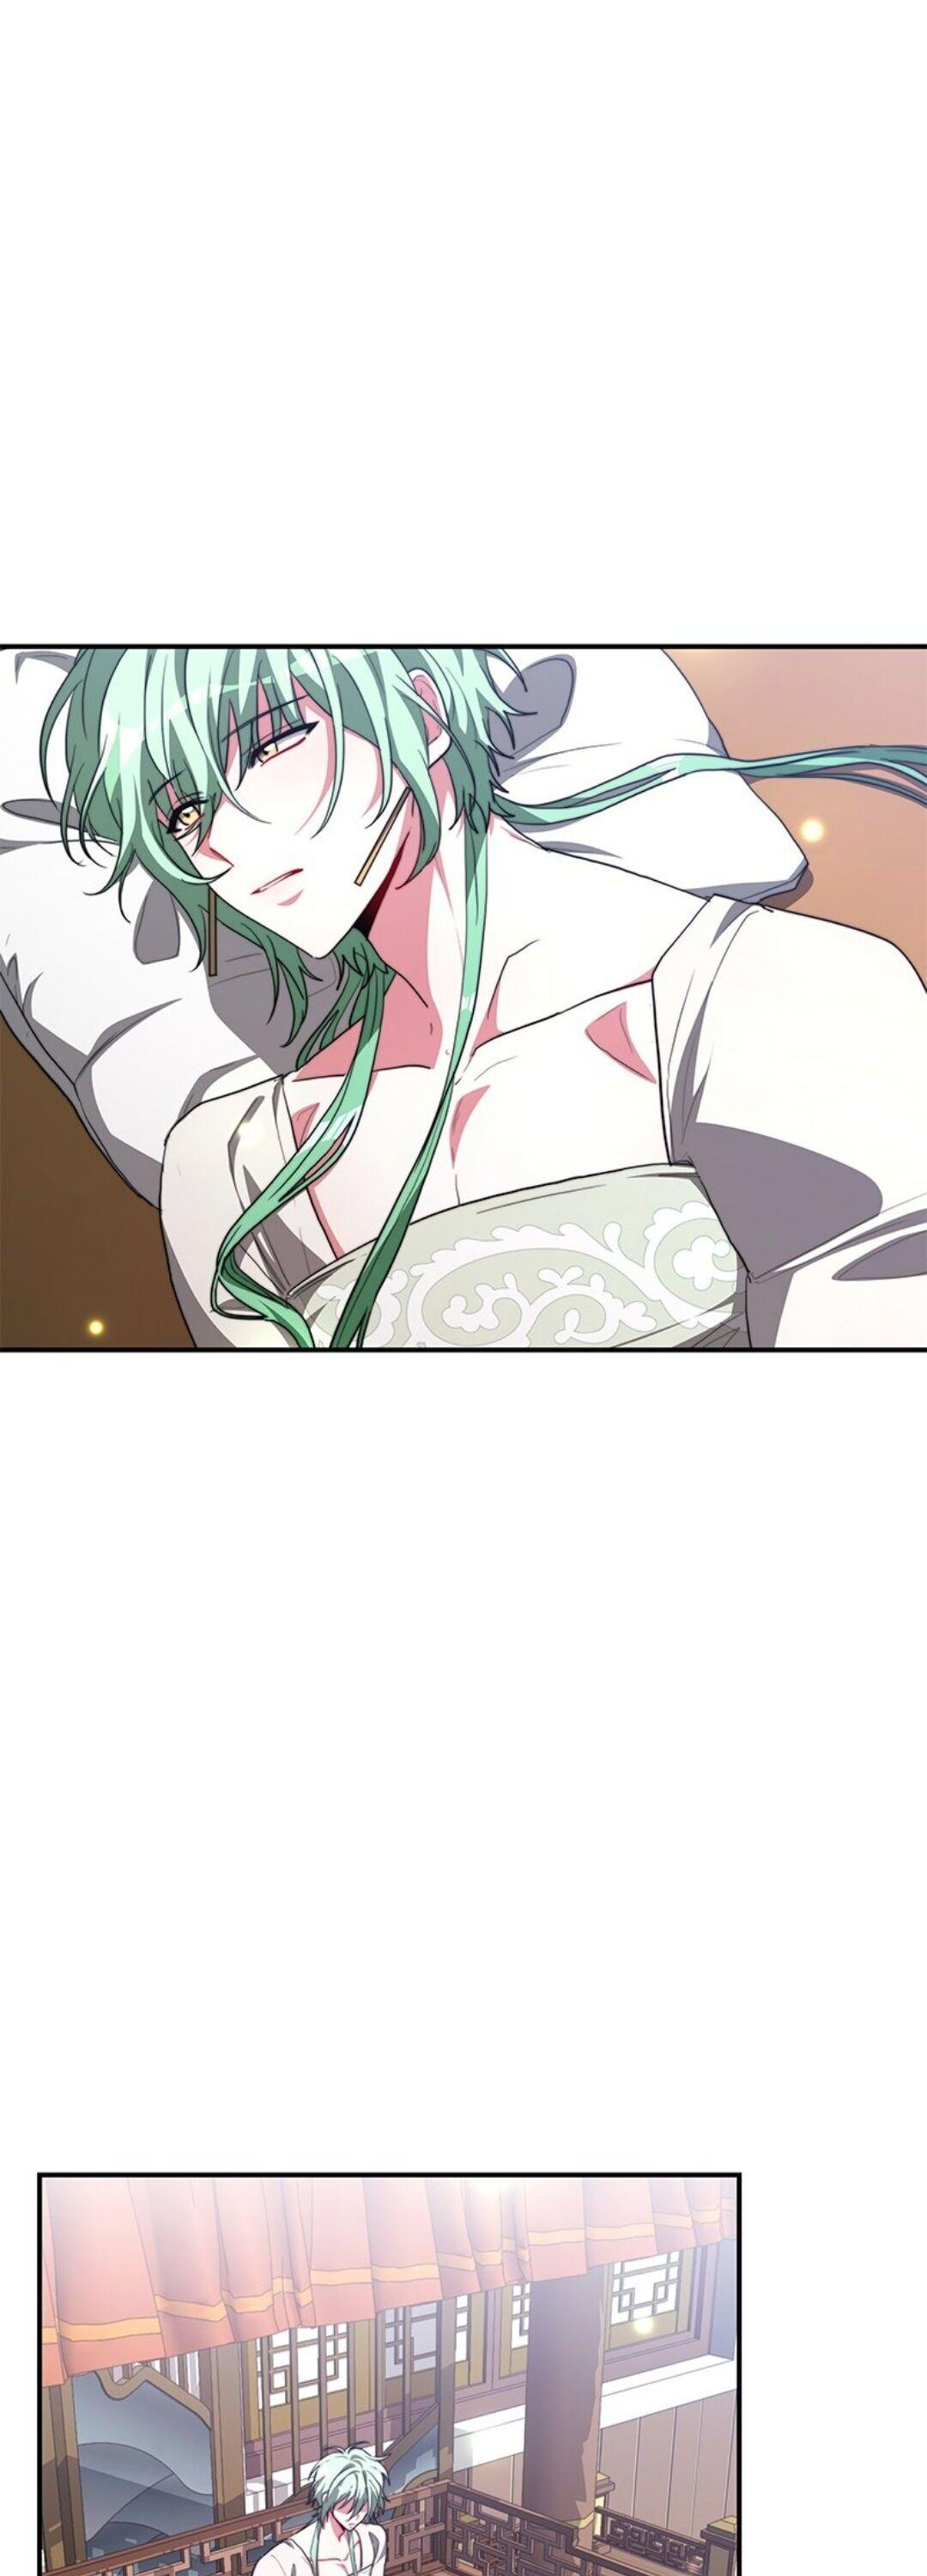 The Red Empress Chapter 27 : The Lion page 4 - Mangakakalots.com